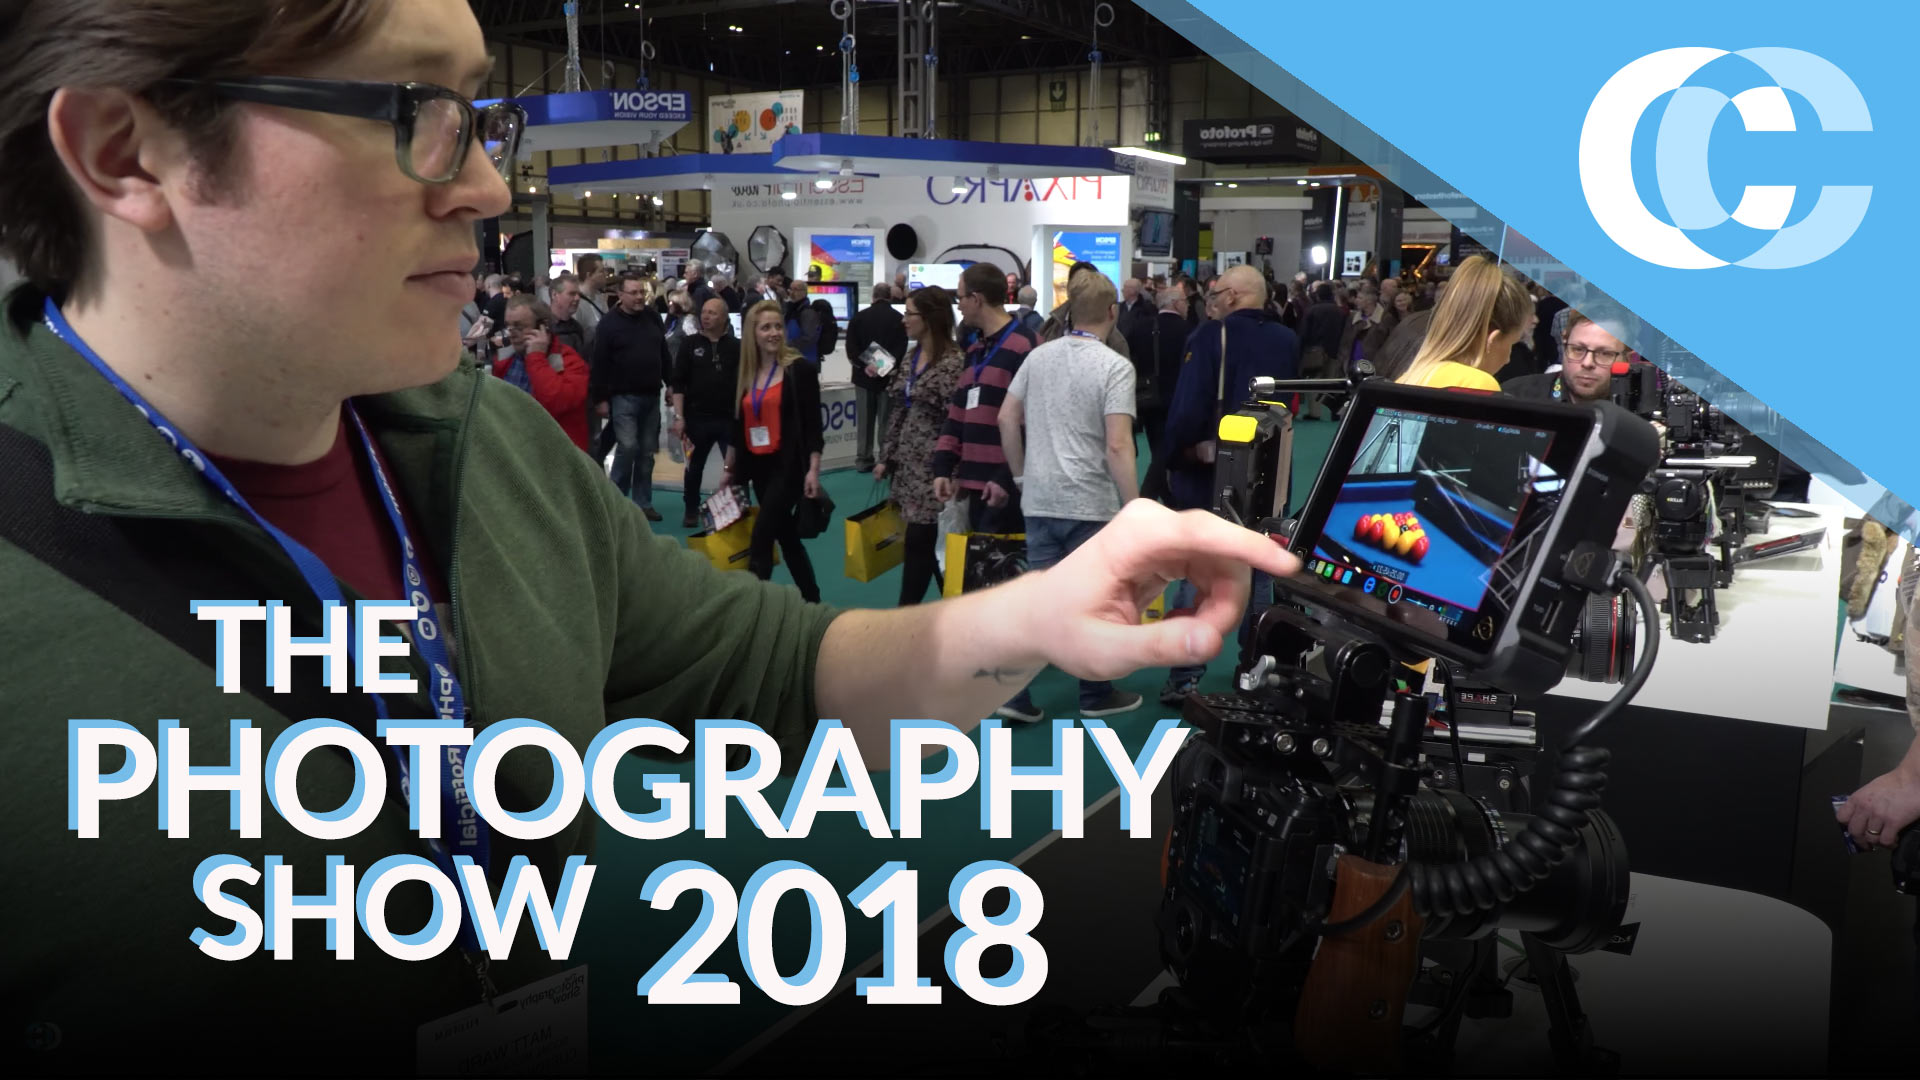 Is The Photography Show worth attending?